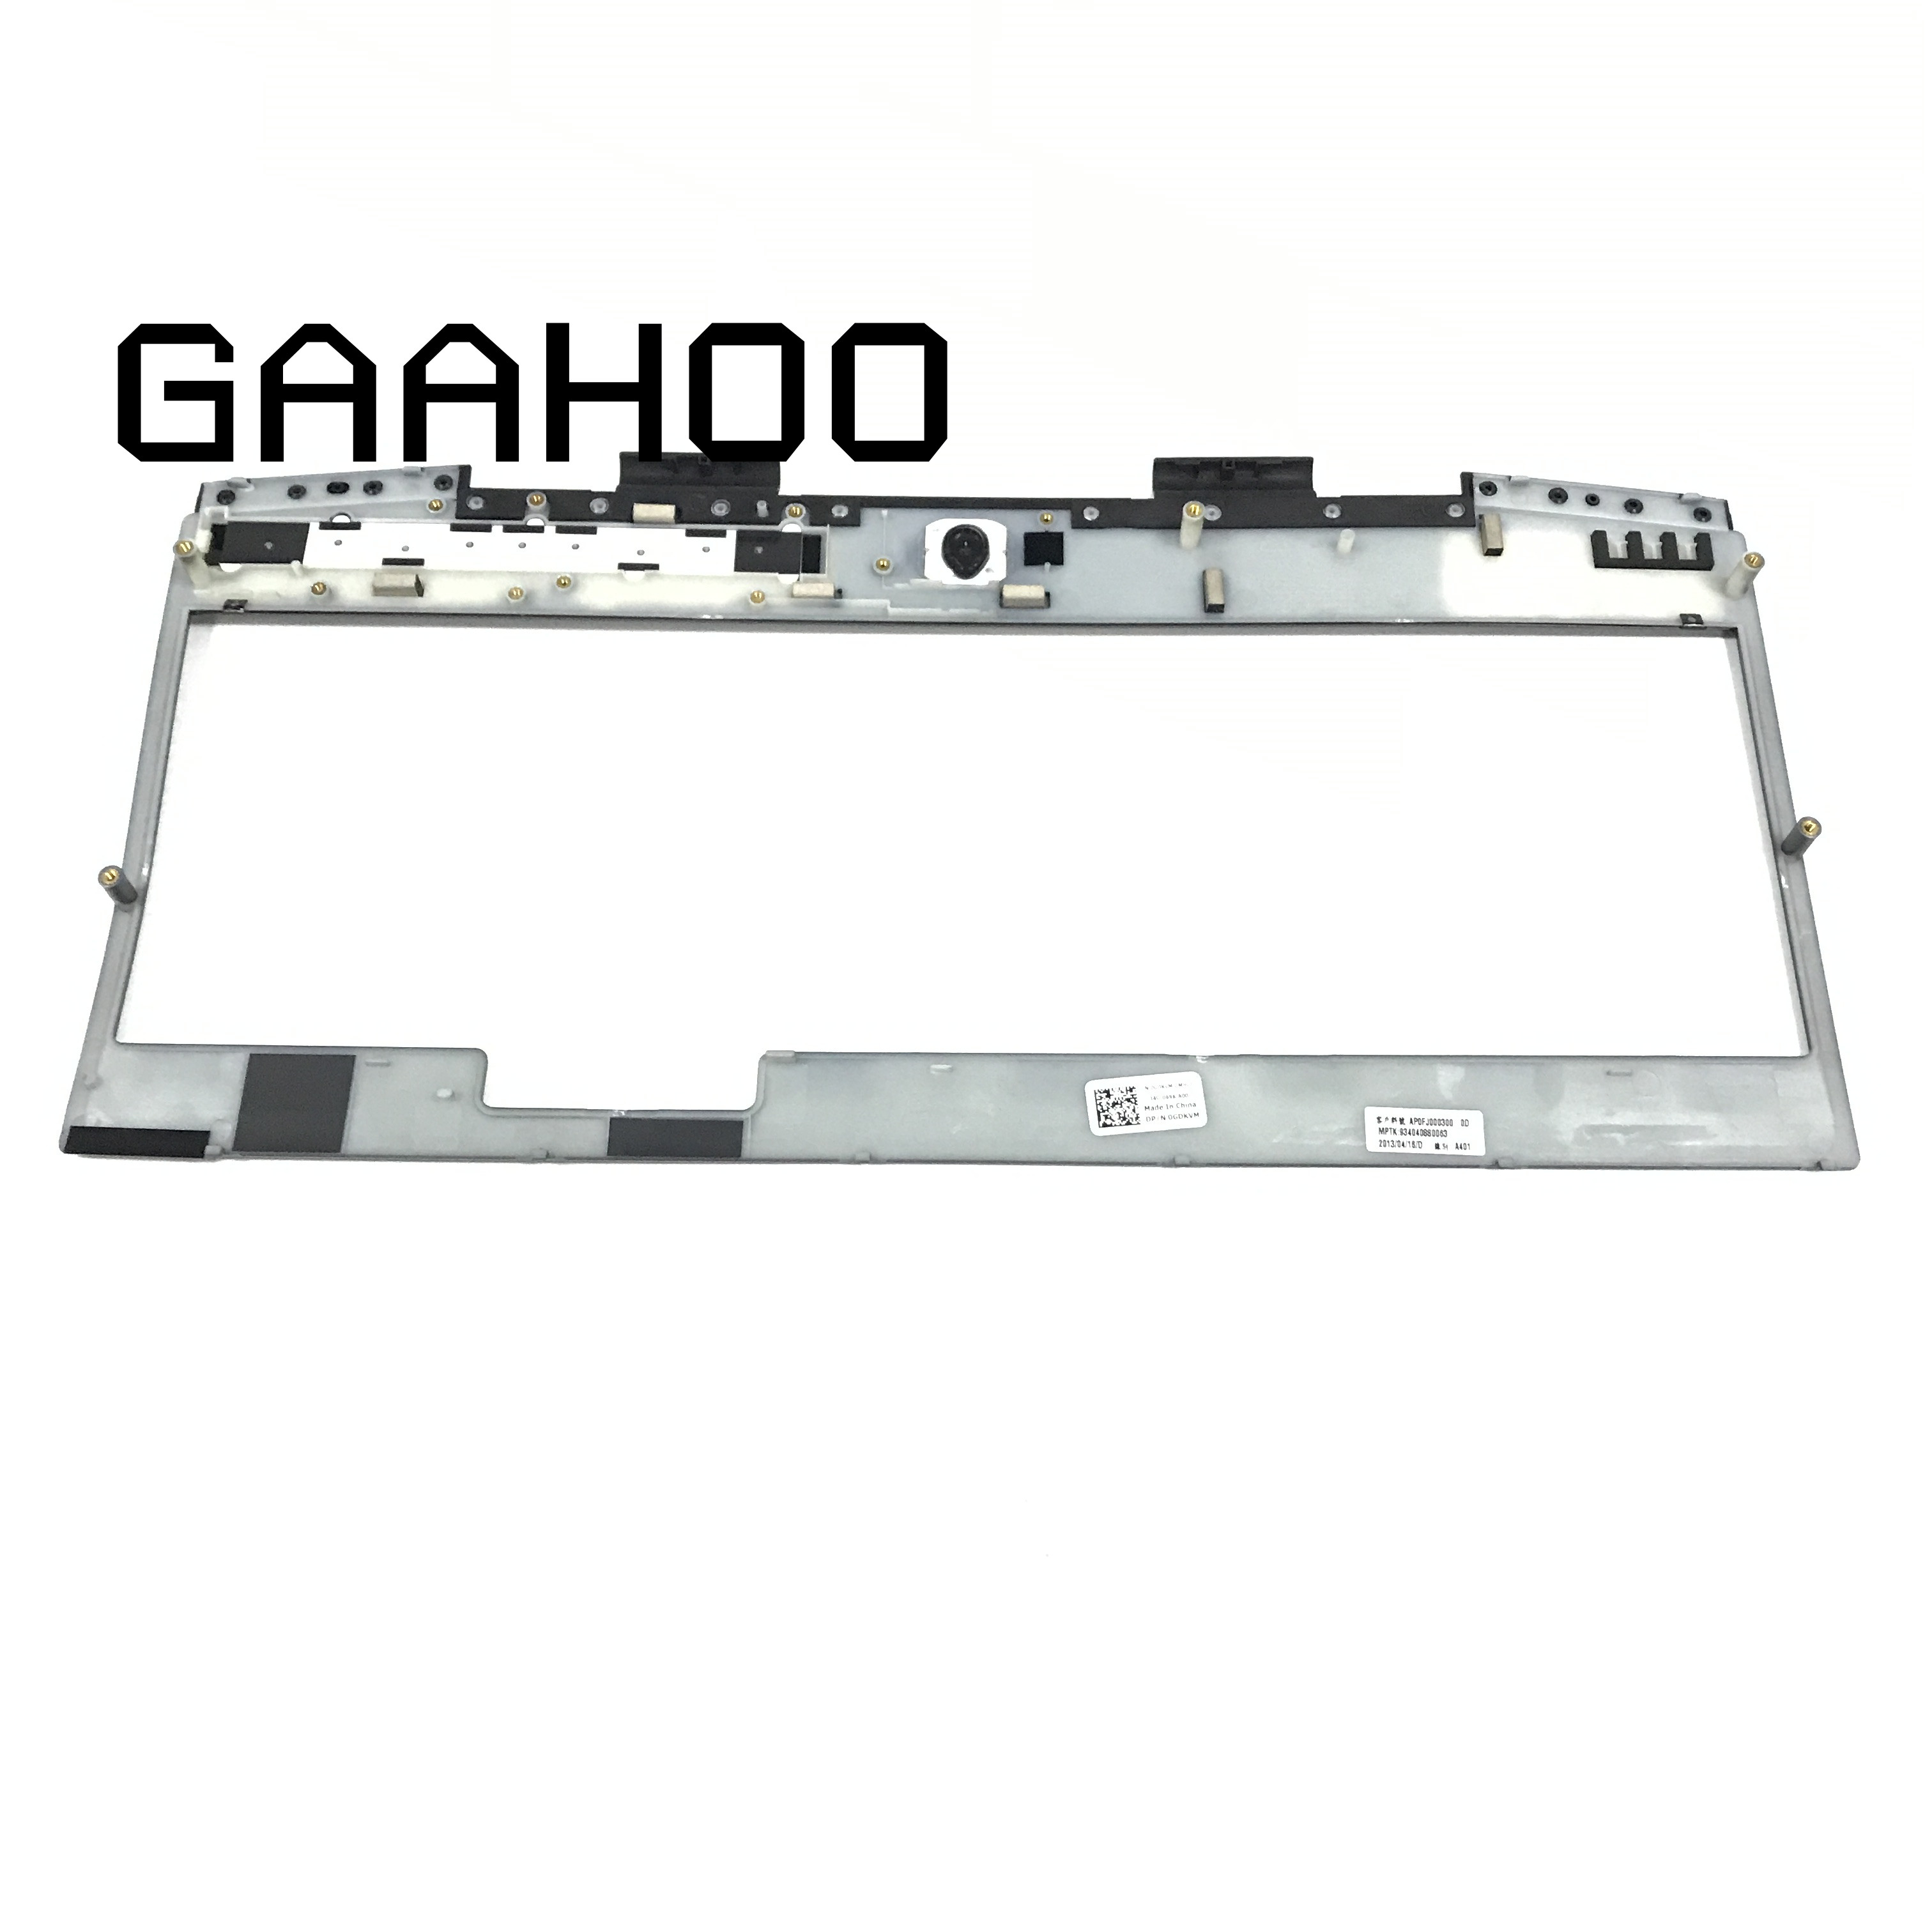 Brand new original laptop parts for DELL ALIENWARE M18X R1 R2 Keyboard bezel trim image